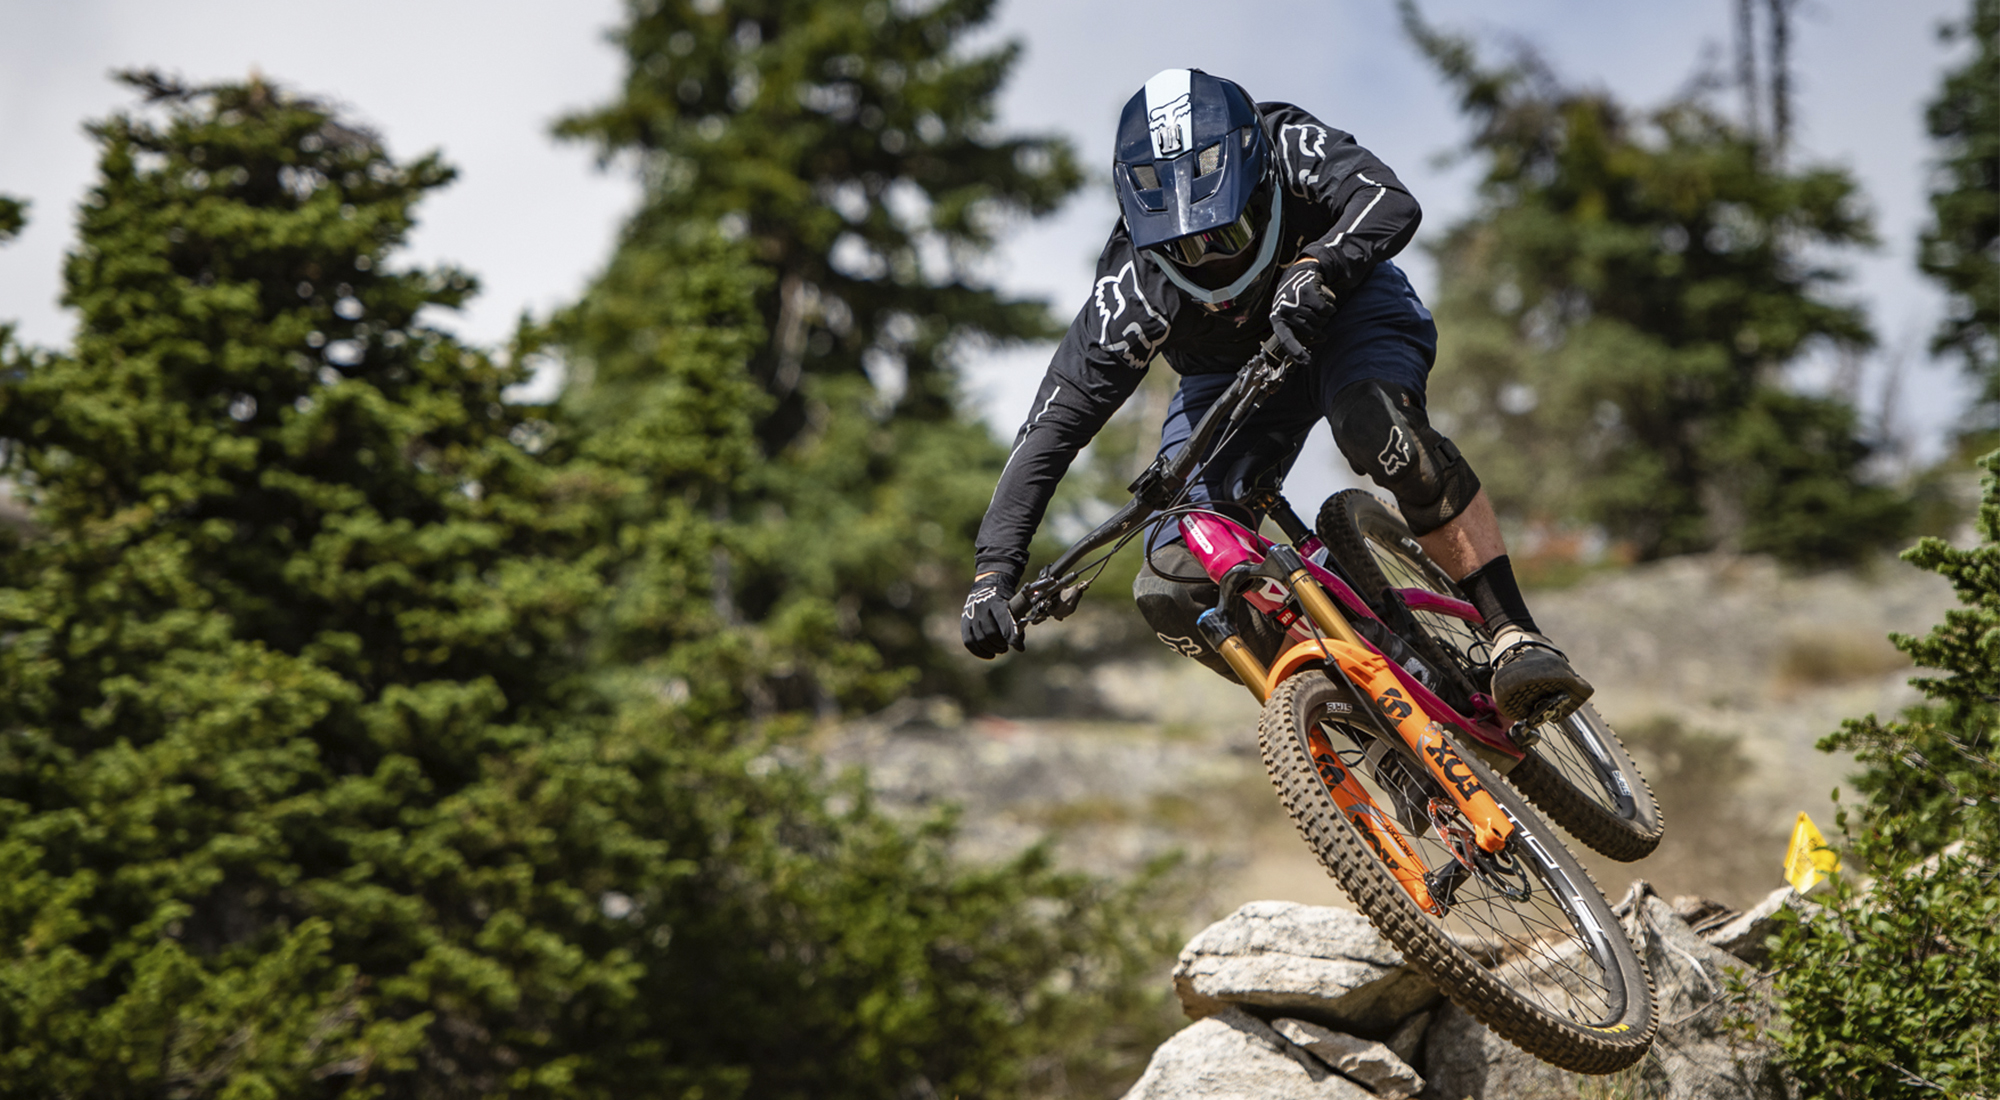 The Pinkbike Academy